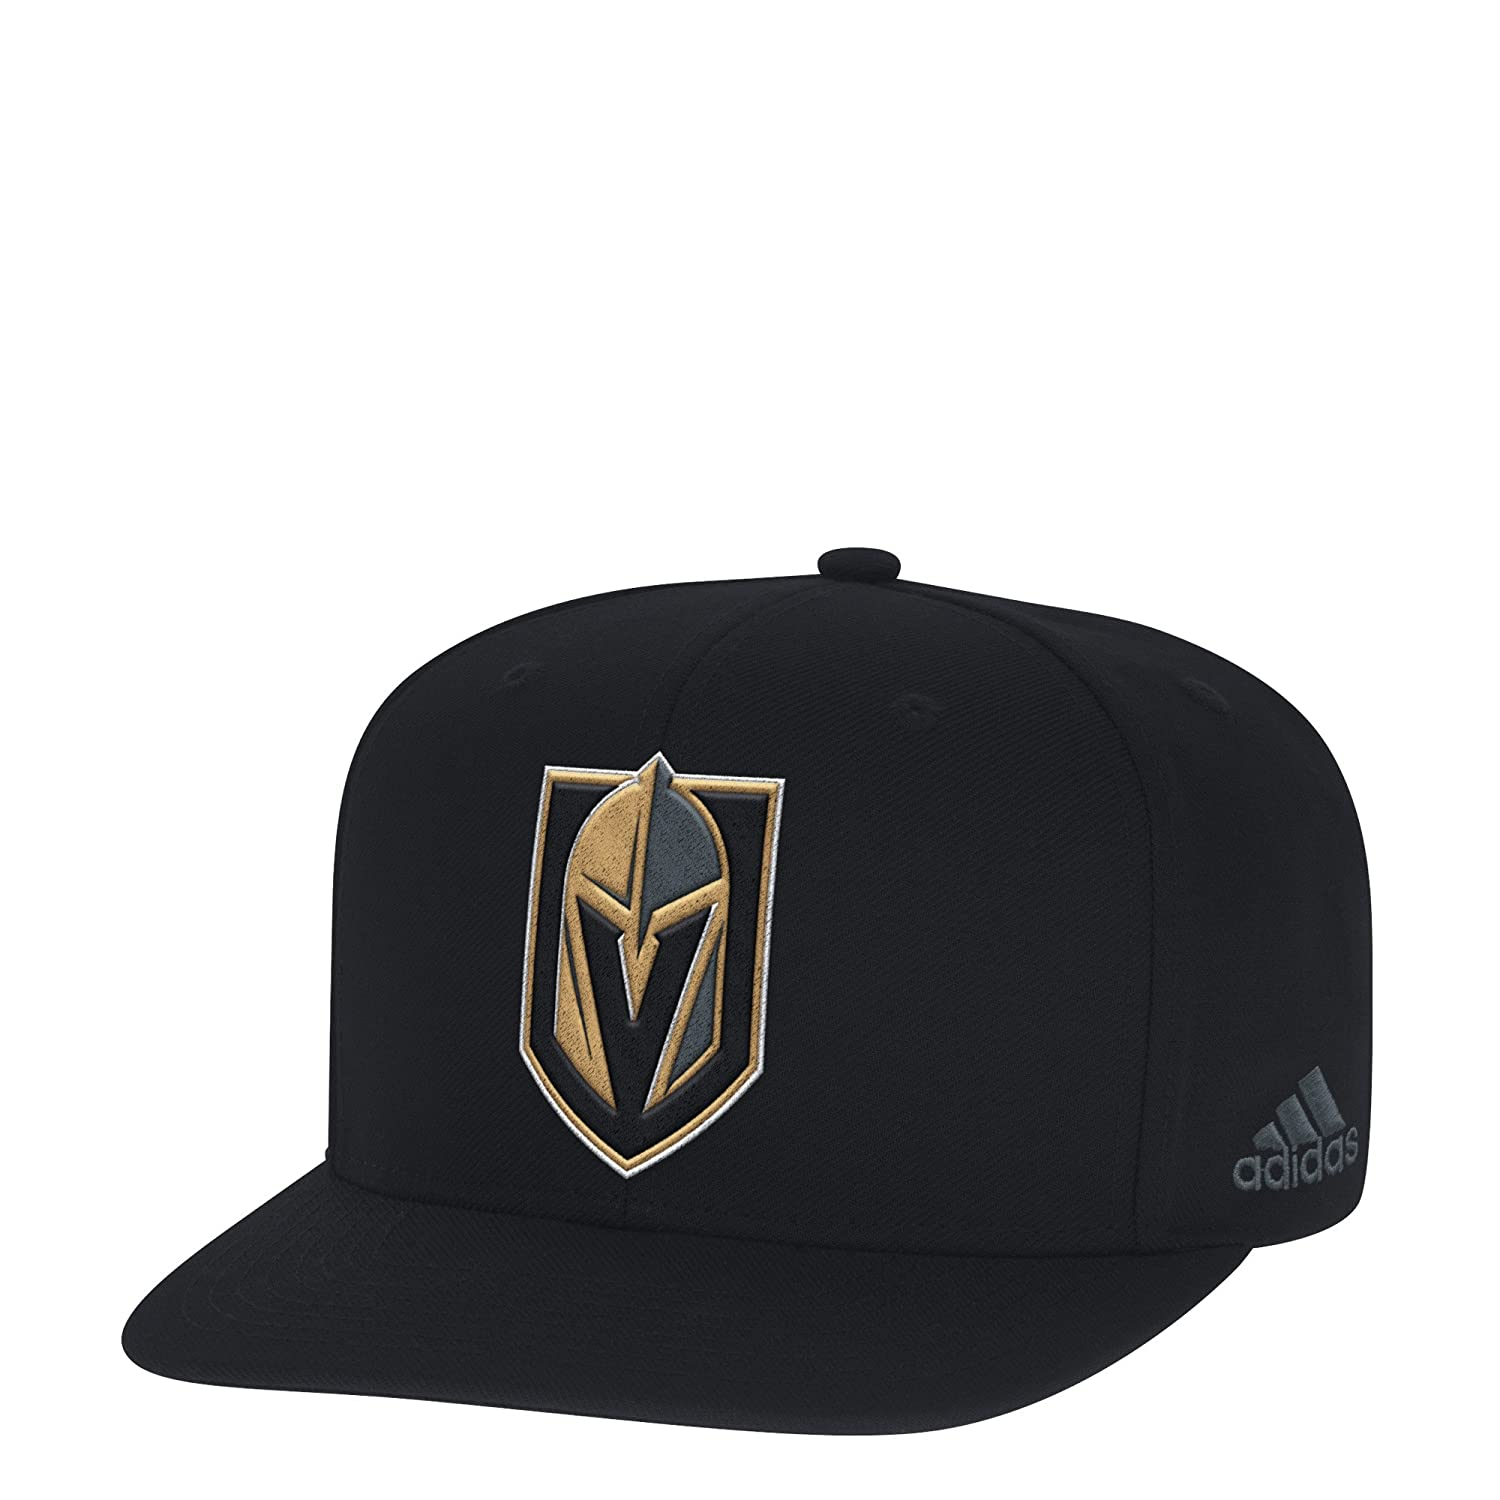 bbfe4a3554f Amazon.com   adidas Las Vegas Golden Knights Black Snapback Adjustable Hat    Sports   Outdoors